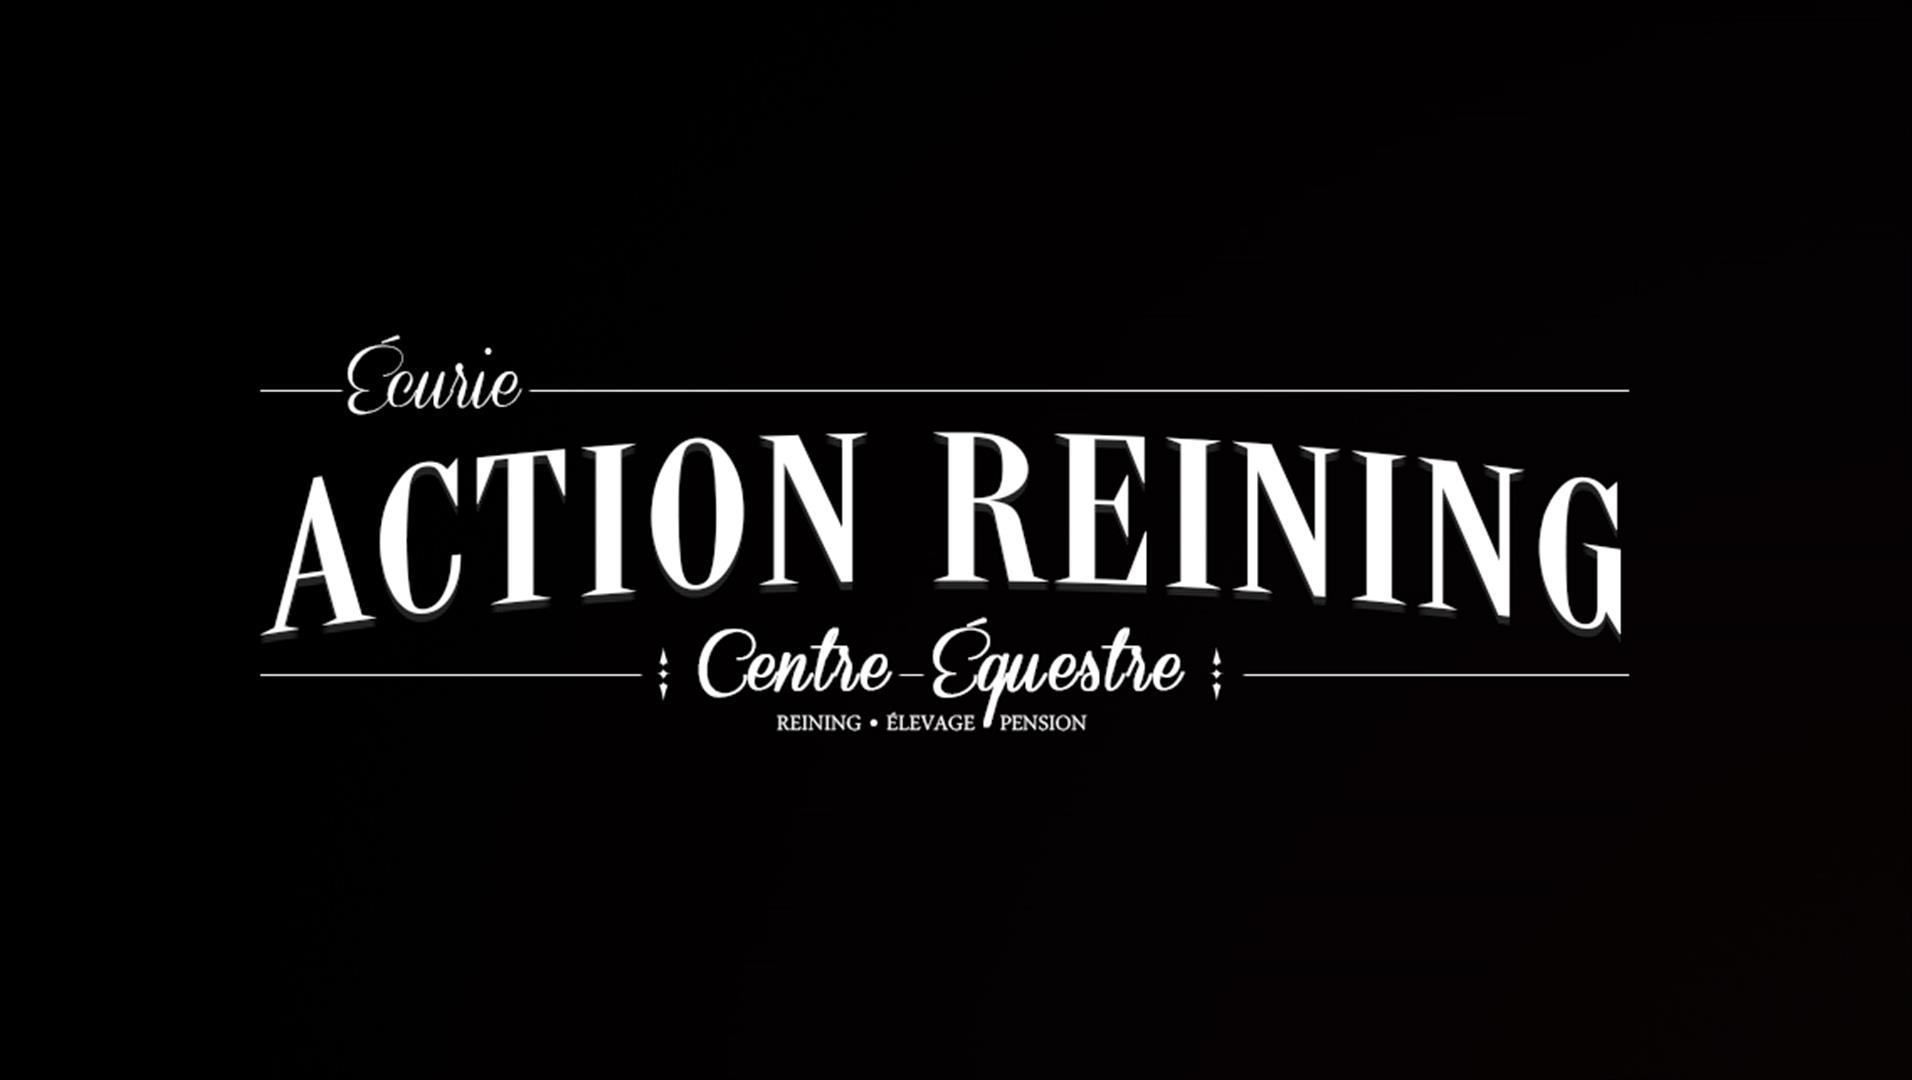 2 action reining logotype creation logo